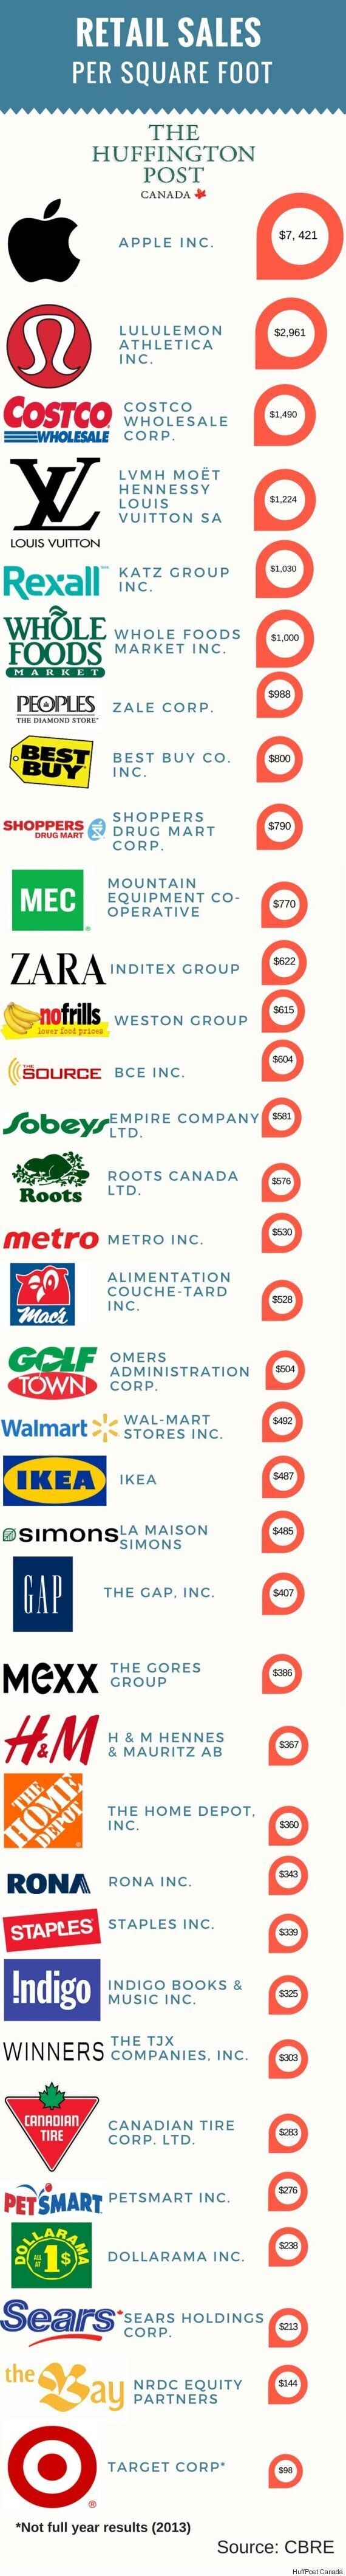 These Are The Retailers Making The Most Money In